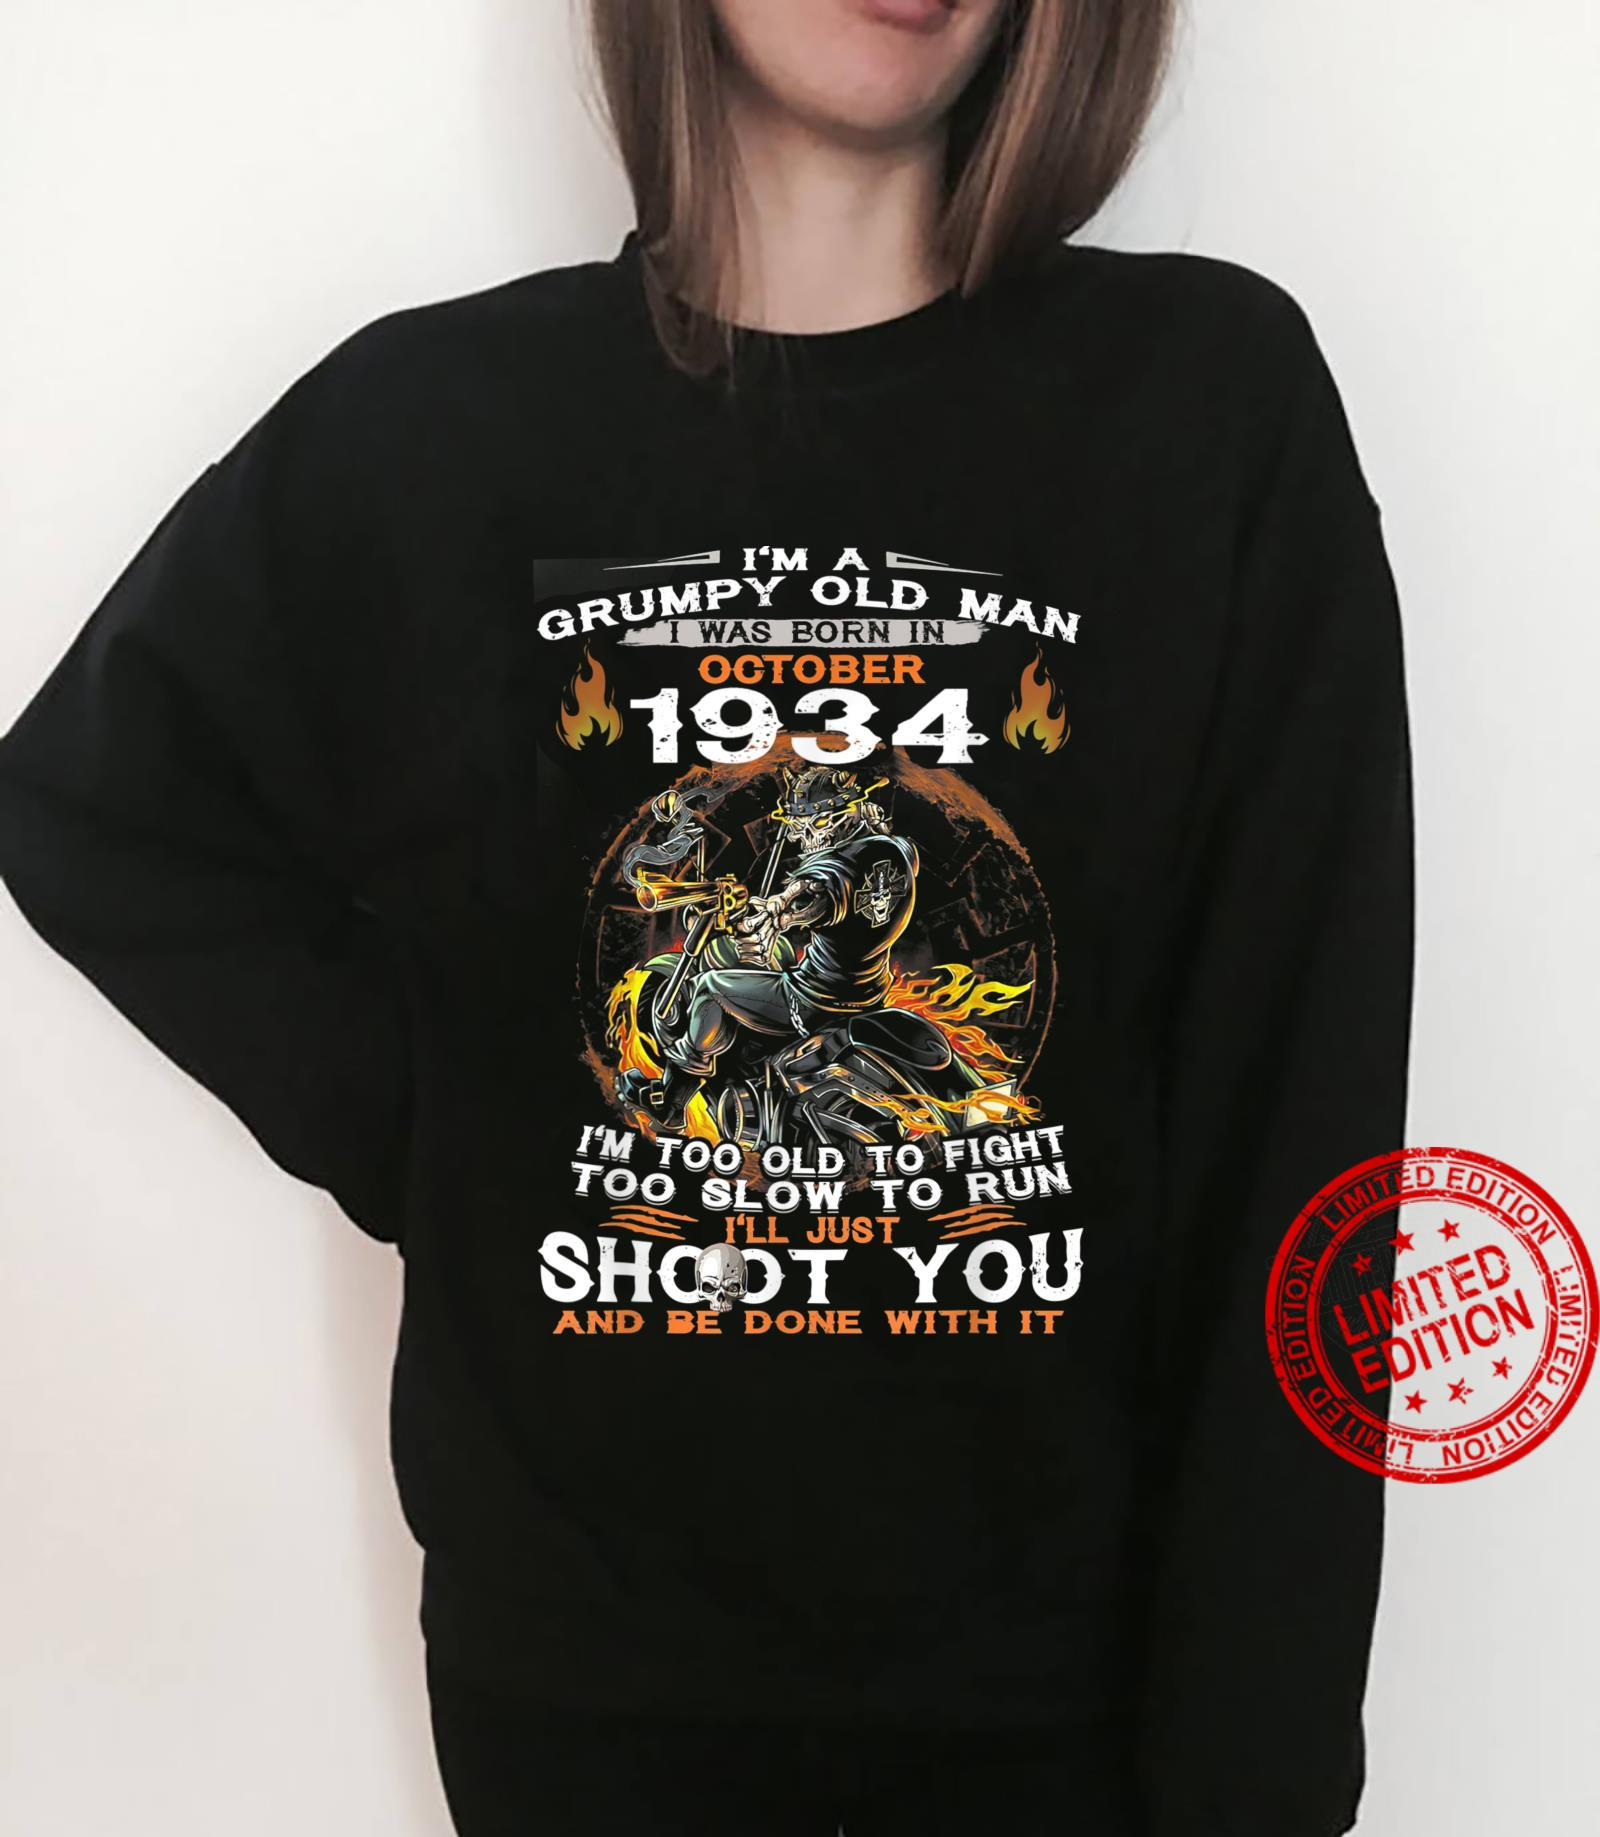 I'm A Grumpy Old Man I Was Born In OCTOBER 1935 Shirt sweater